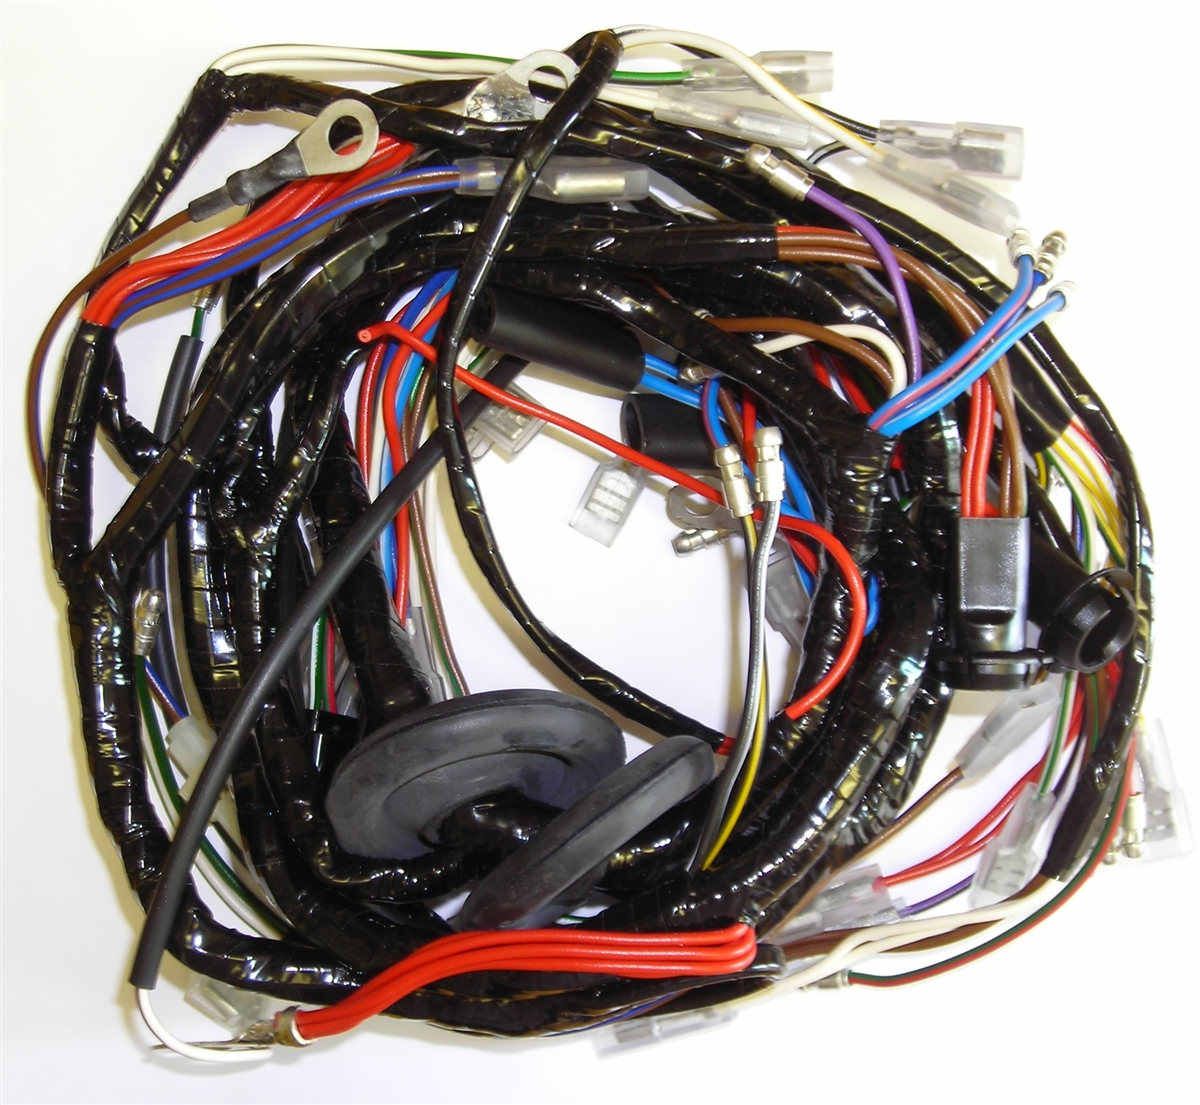 MC71PP 2?1374666211 motorcycle wiring harness motorcycle wiring harness at fashall.co